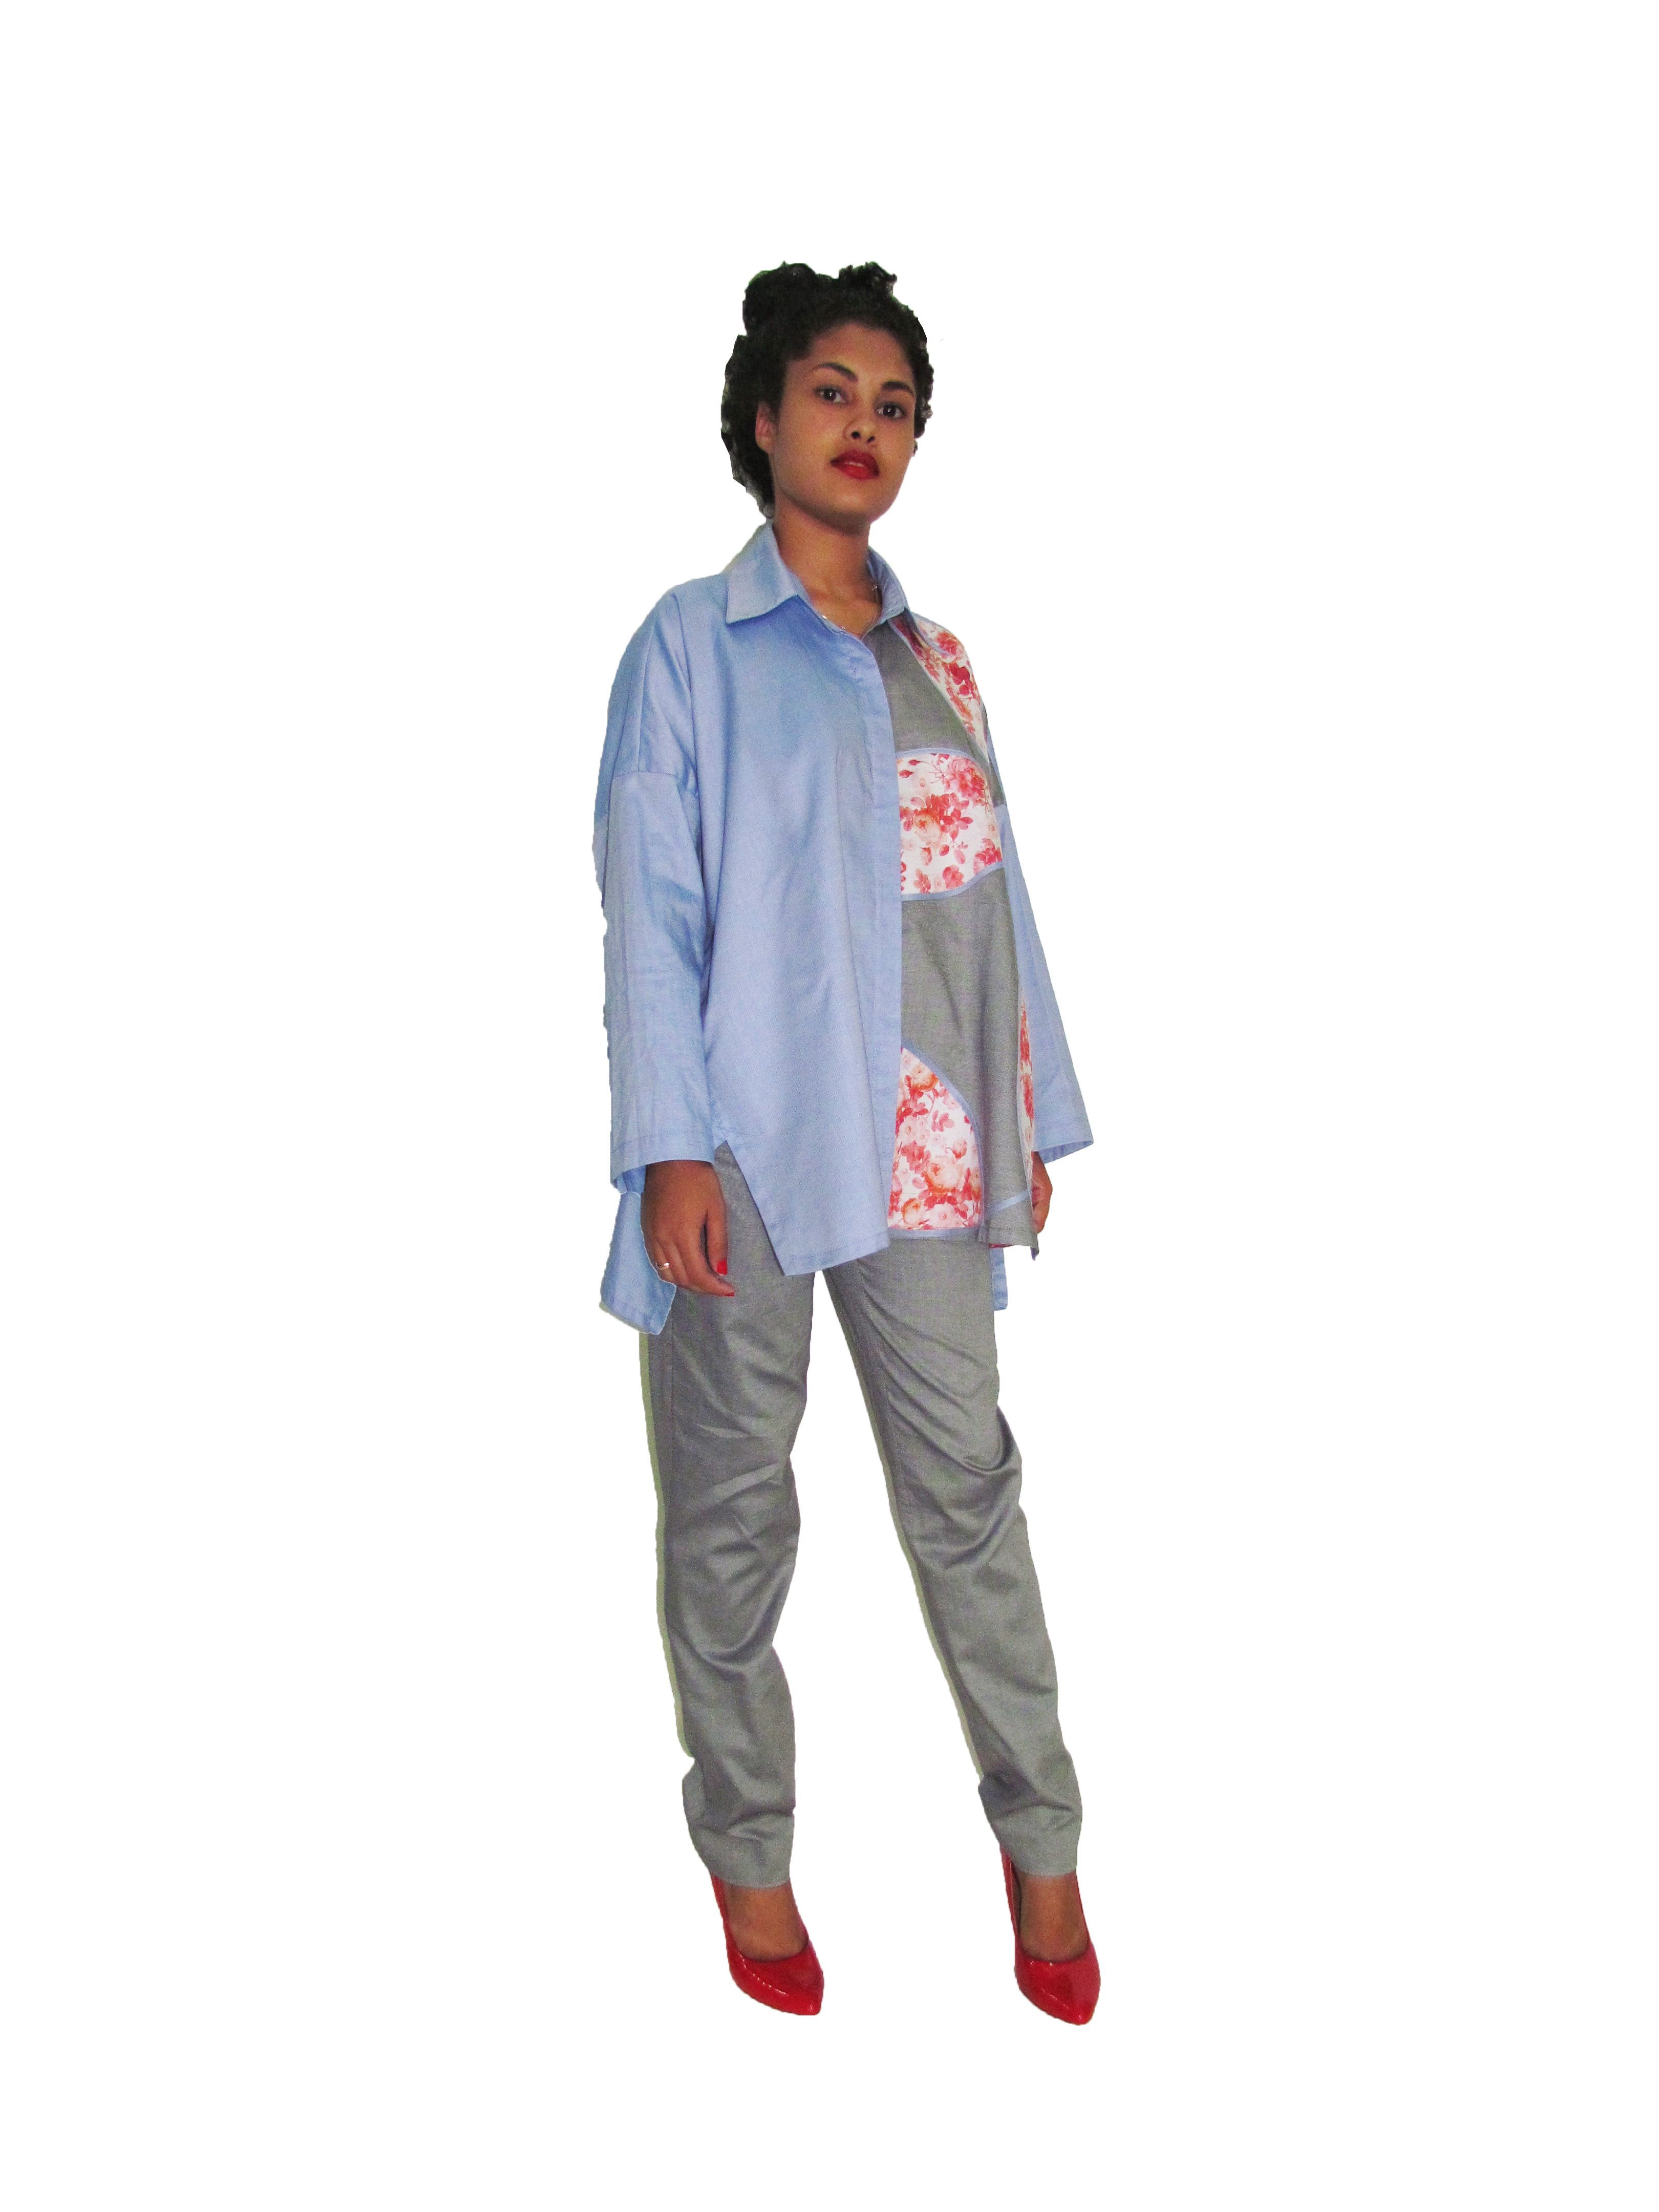 SP 1743 - Collaged Oversized Shirt                         SP 1744 - Strainght Legged Pant